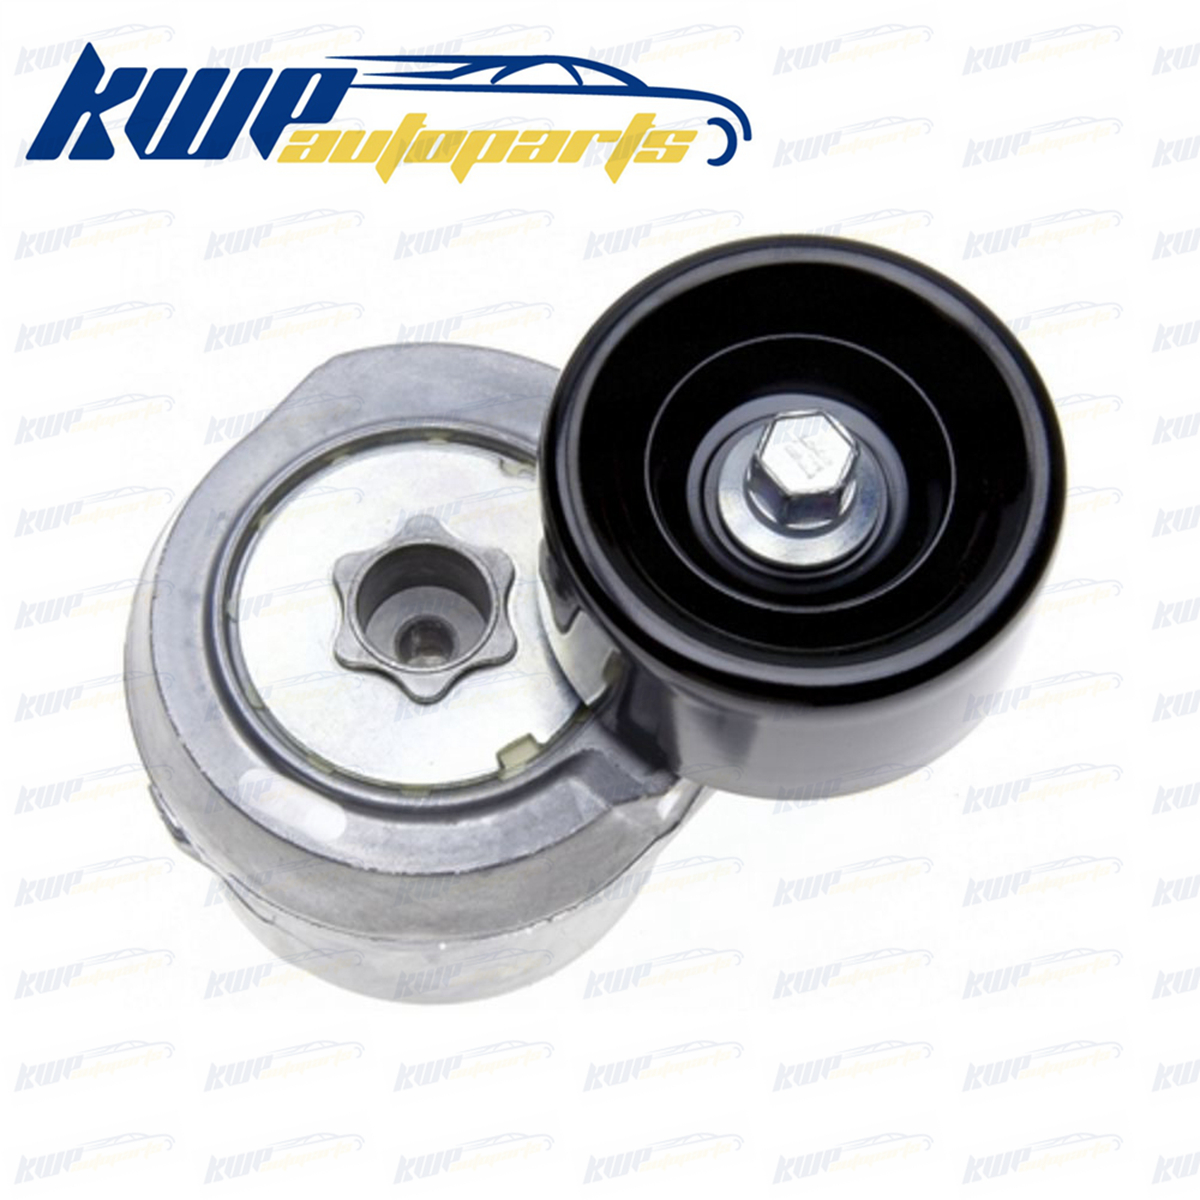 New Belt Drive Tensioner Assembly For Honda Accord Crosstour Acura Tsx Engine Diagram 24l 31170 R40 A02 In Timing Components From Automobiles Motorcycles On